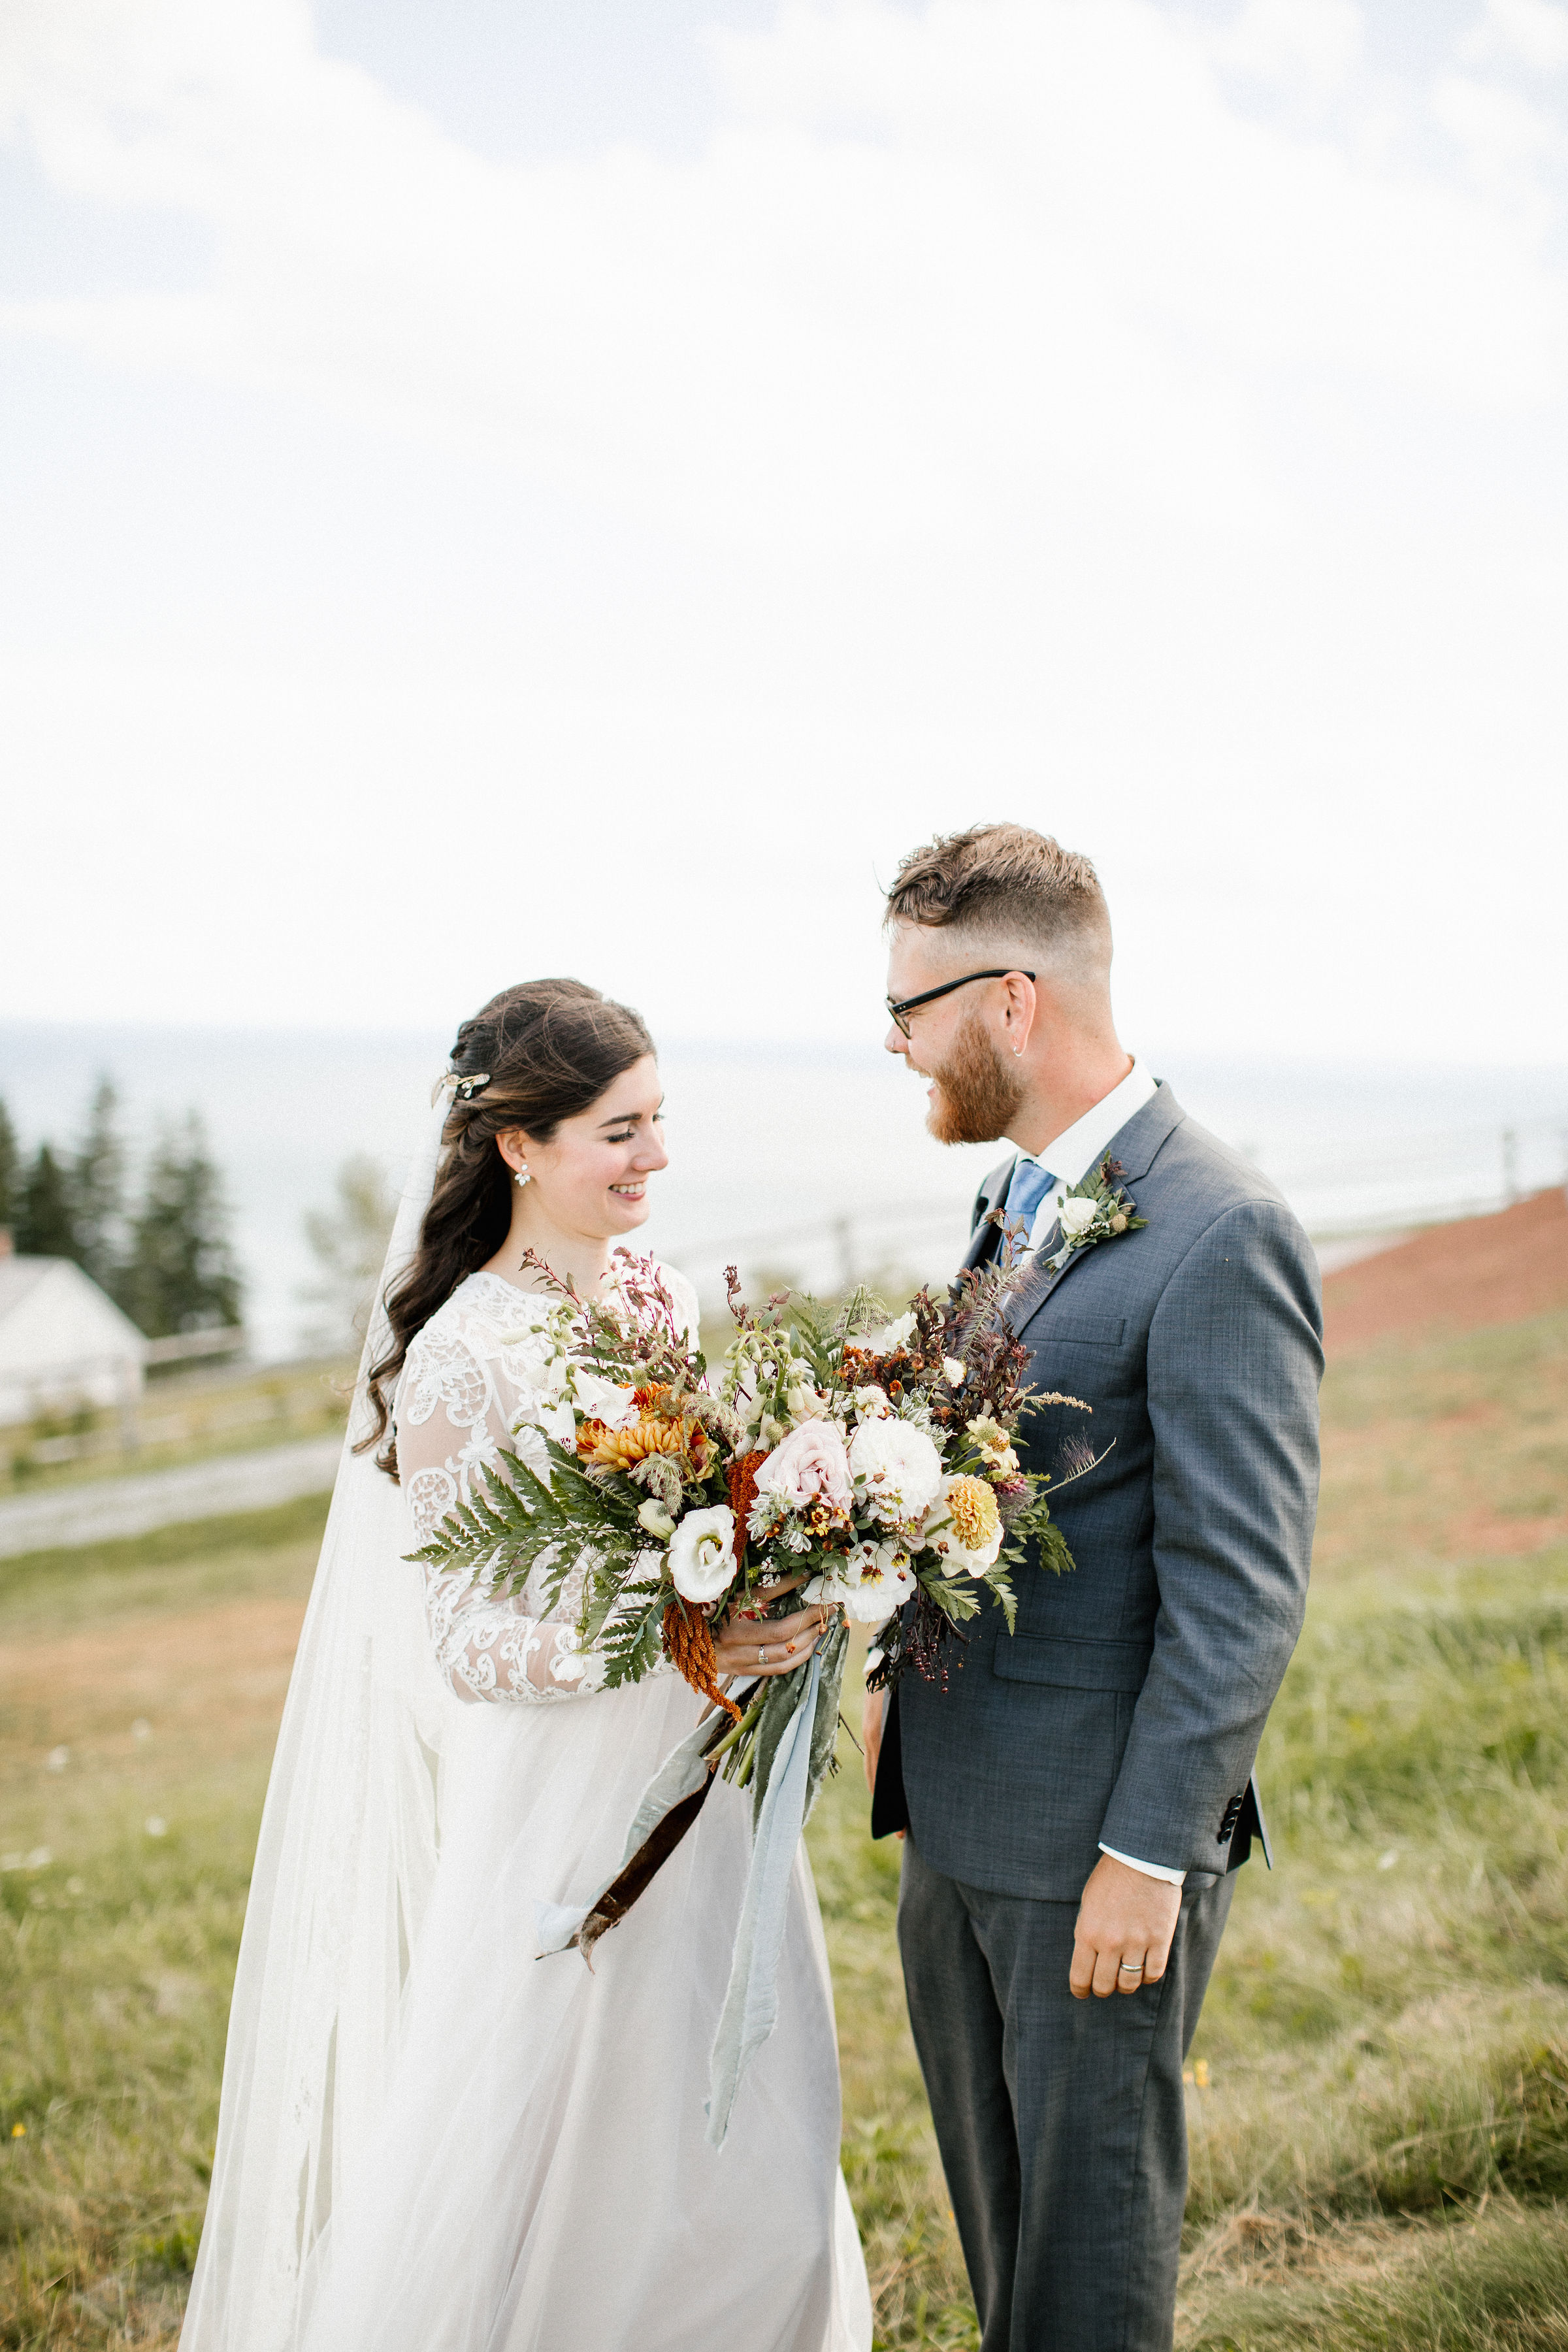 Lush bridal bouquet in muted hues with wildflowers, greenery, and garden roses. Tennessee Wedding Florist.